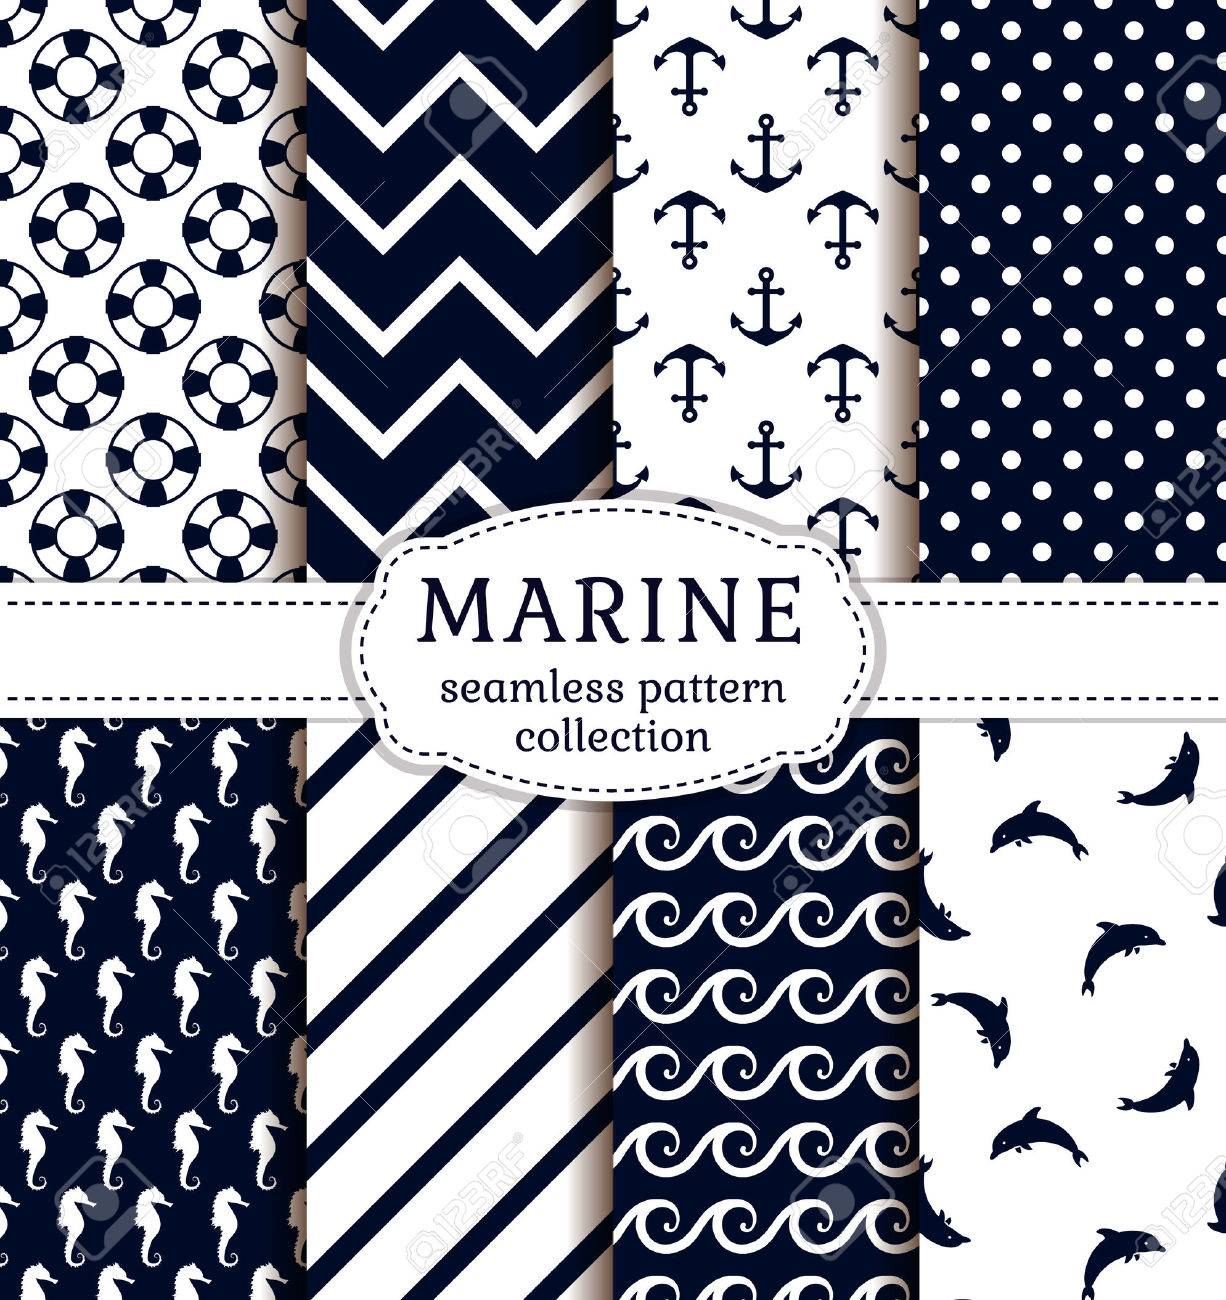 Sea and nautical backgrounds in white and dark blue colors. Sea theme. Seamless patterns collection. Vector set. - 51878265